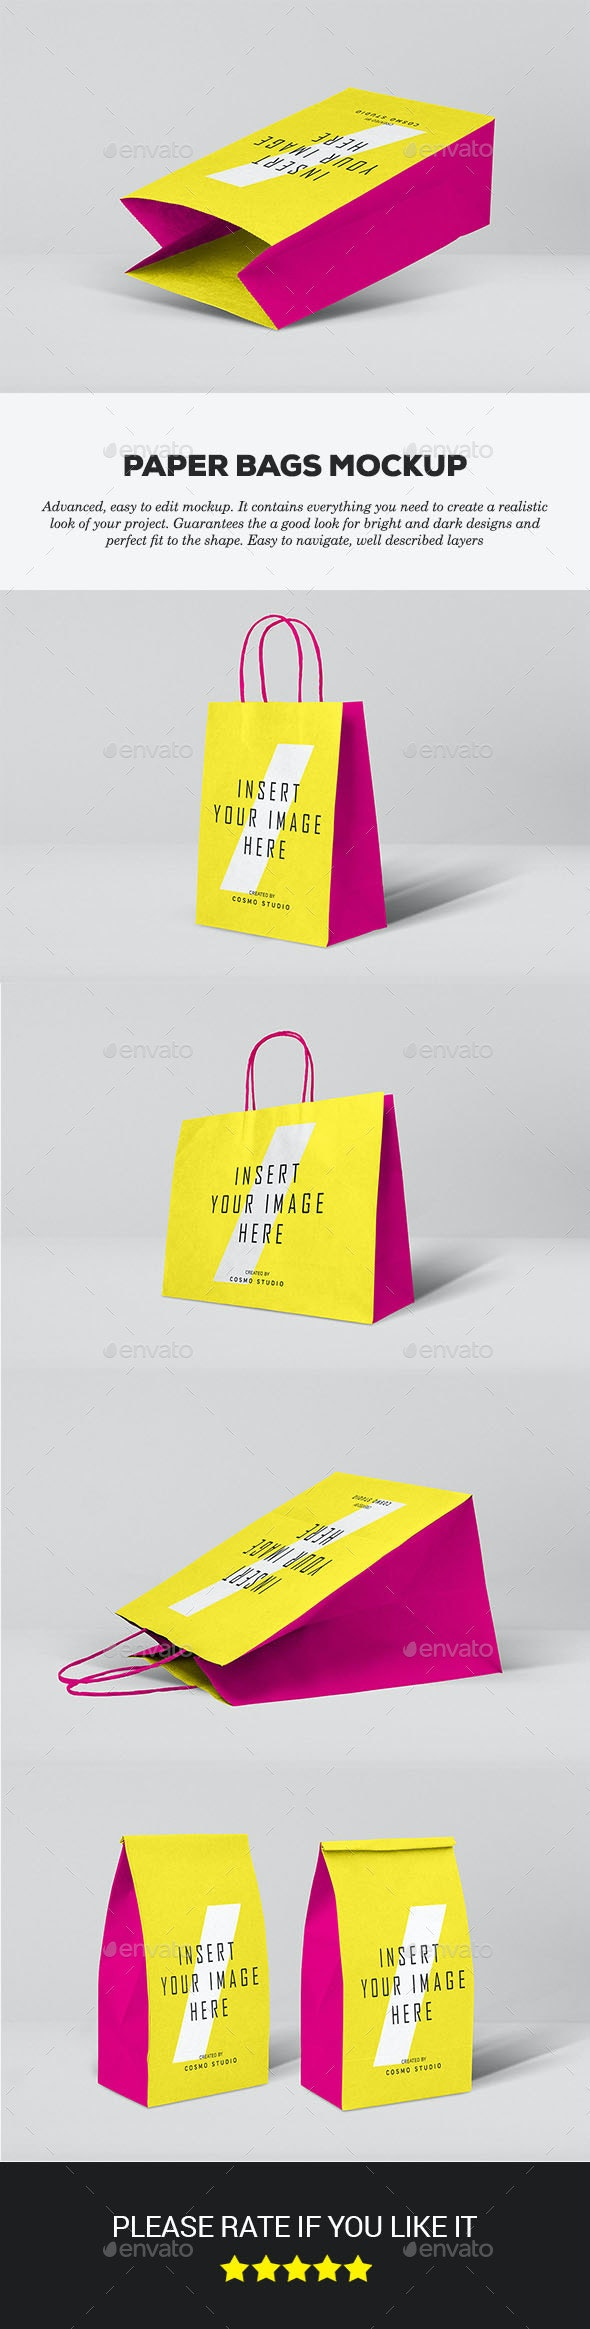 Paper Bags Mockups - Packaging Product Mock-Ups